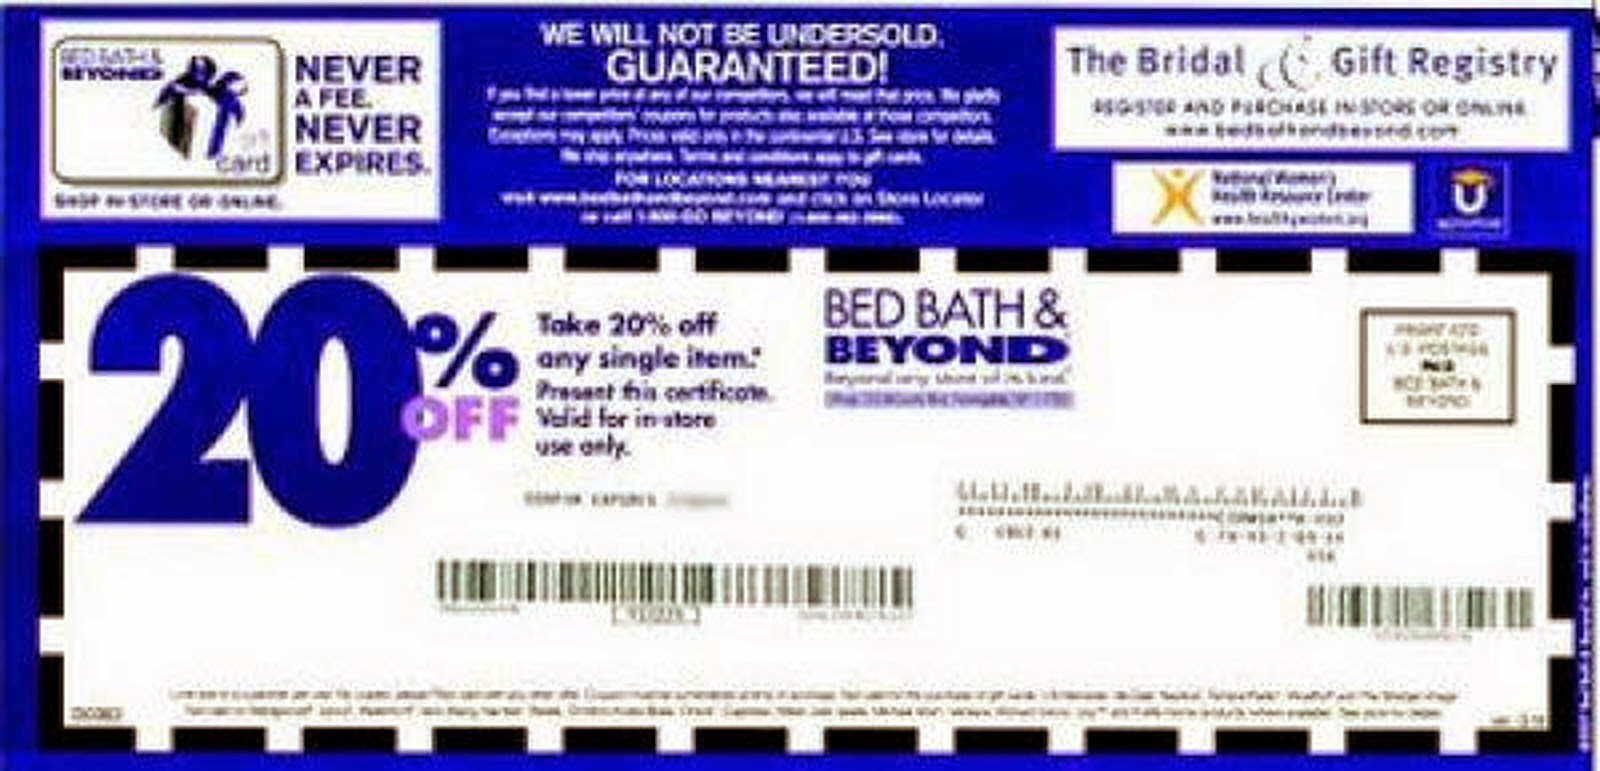 bed bath beyond coupons 2017 2018 best cars reviews. Black Bedroom Furniture Sets. Home Design Ideas